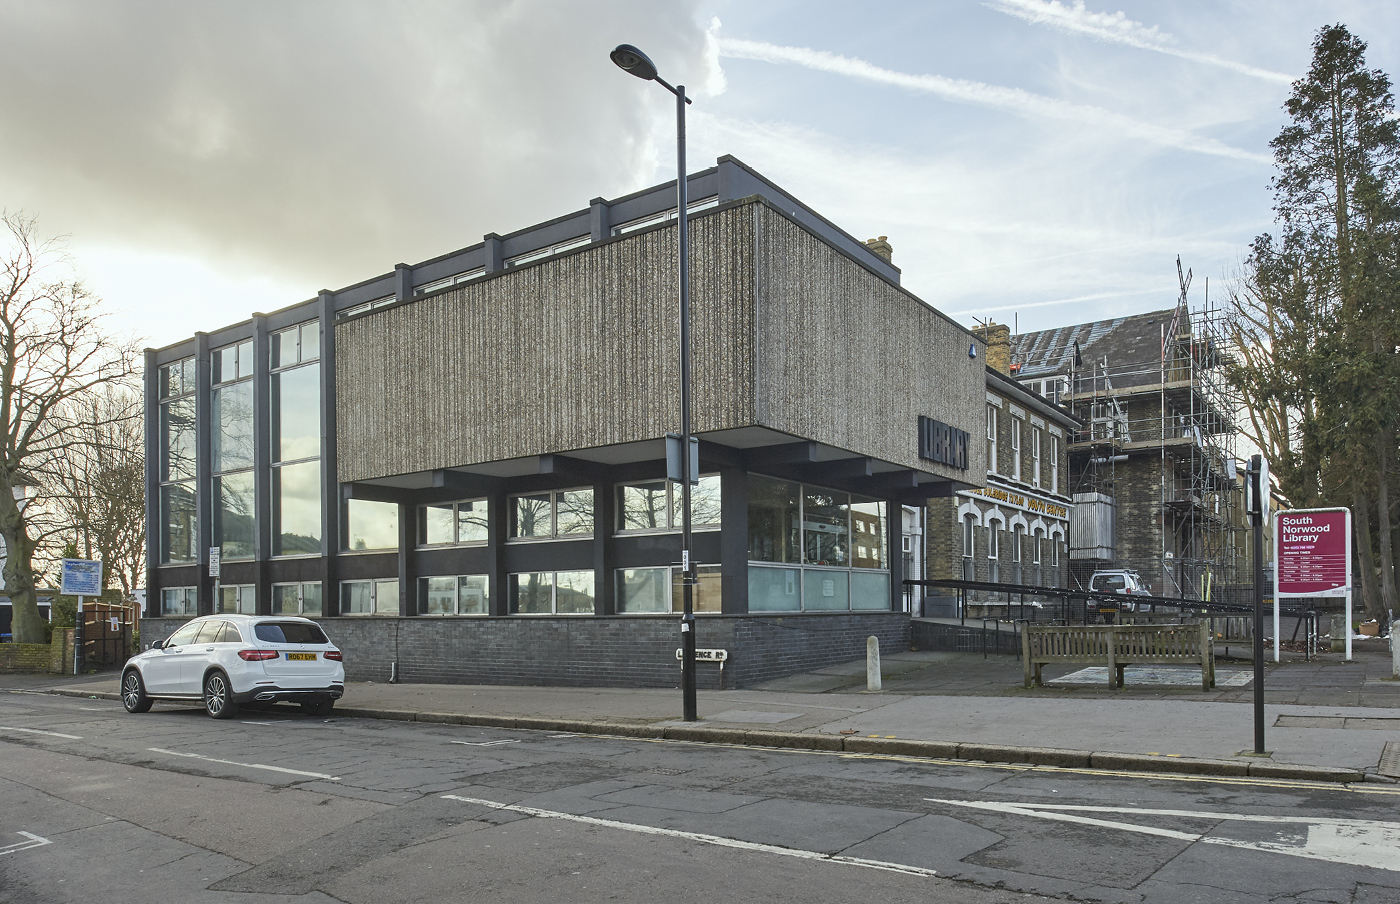 South Norwood brutalist library: Jo Underhill